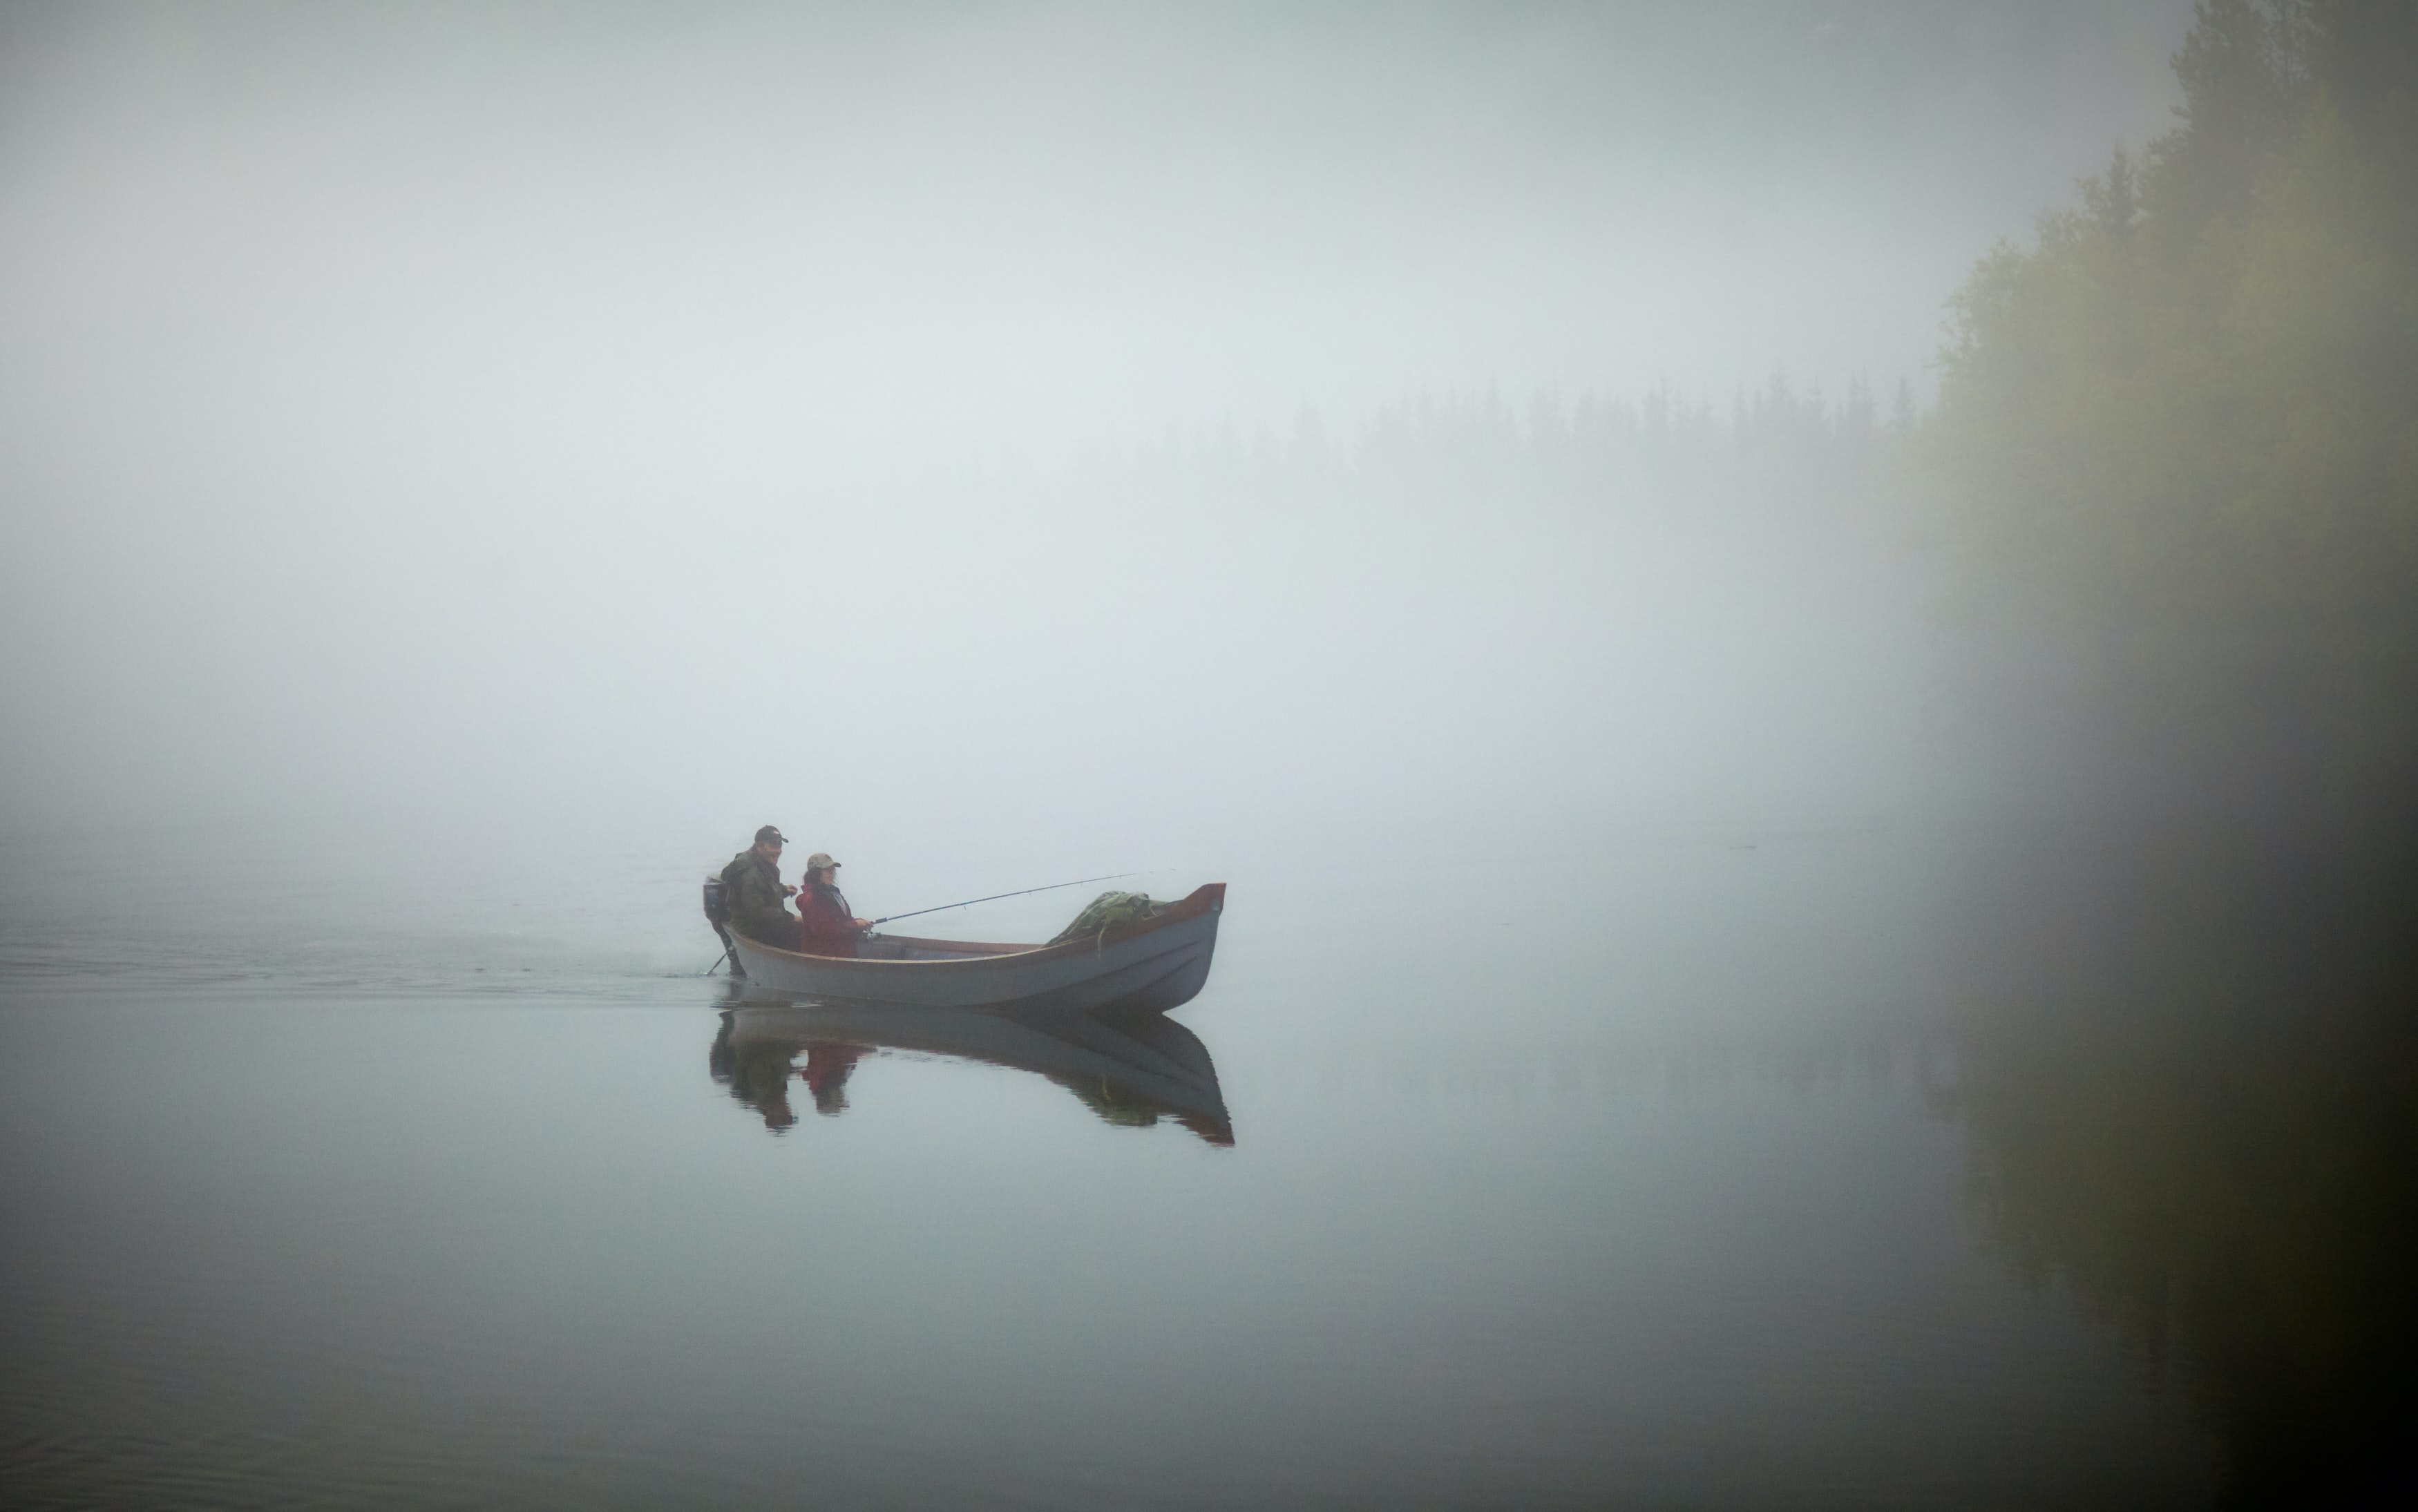 two person fishing on jon boat